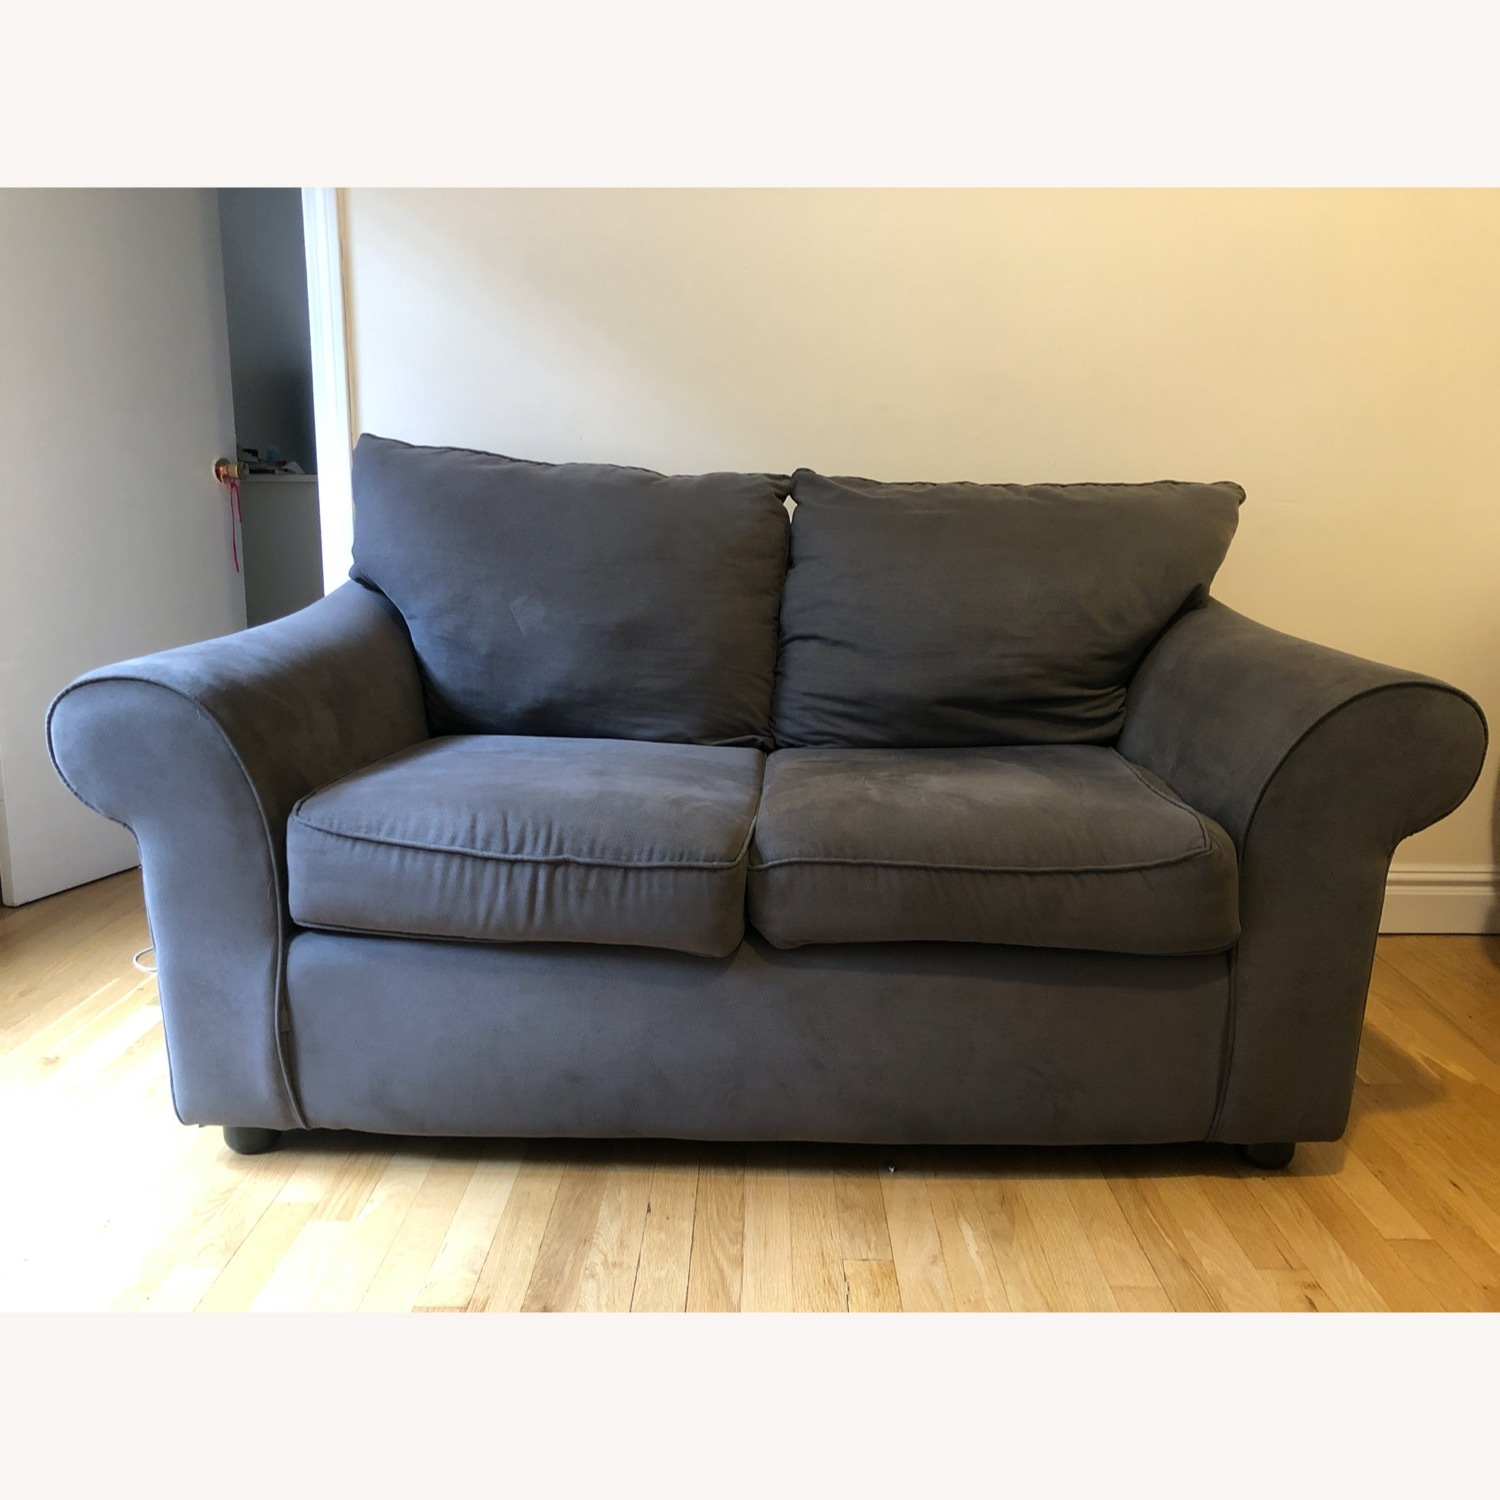 American Made 2-Seat Couch - image-1